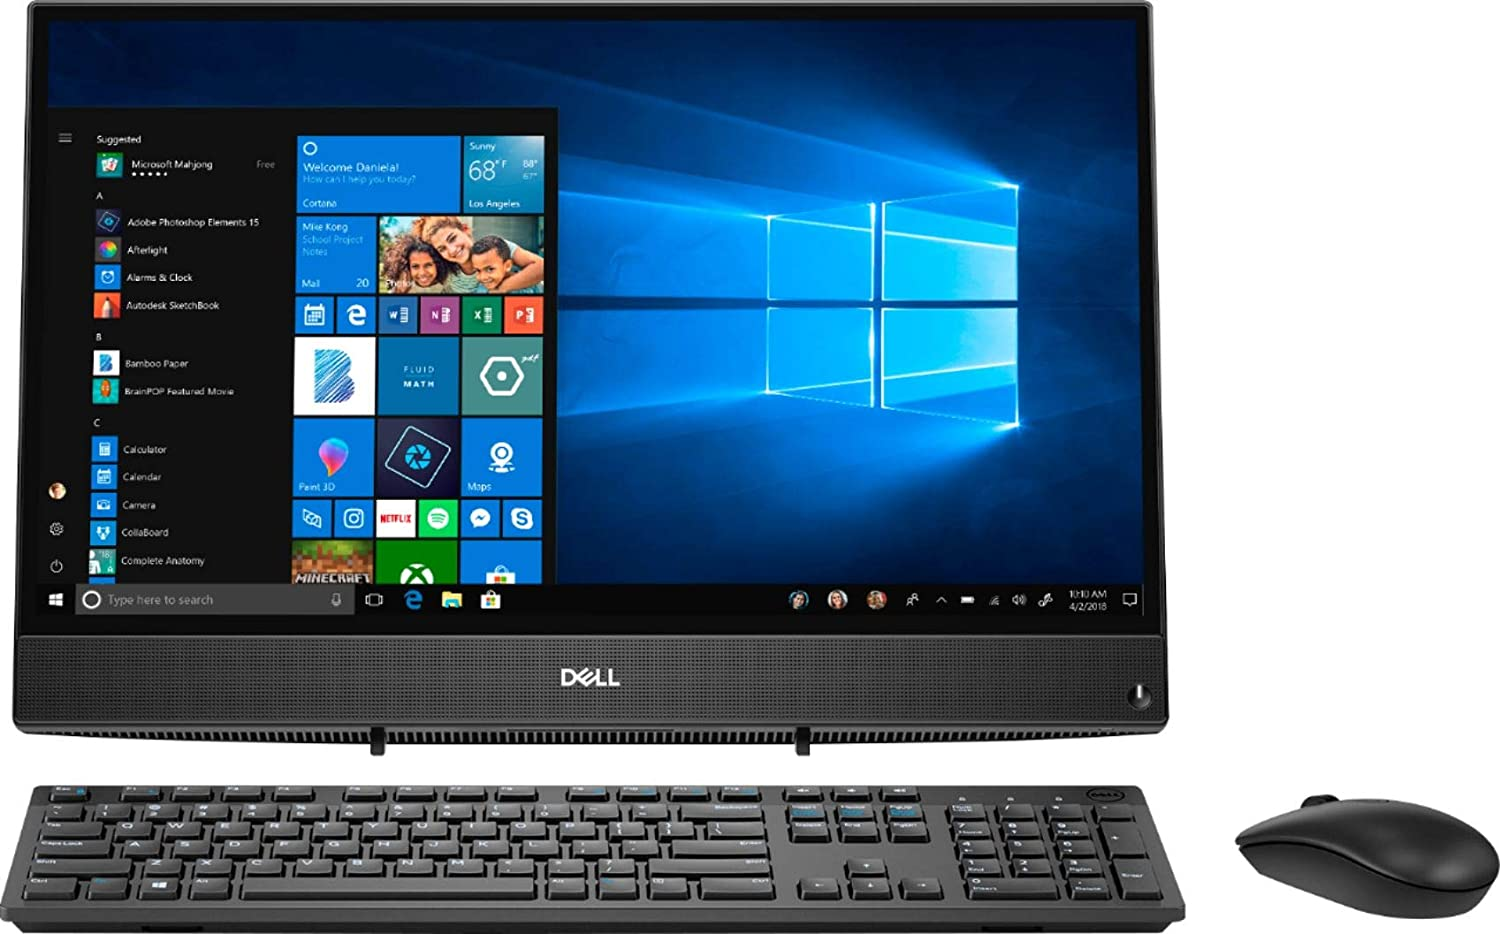 """Dell Inspiron 22 3275 AIO 21.5"""" FHD All-in-One Desktop Computer, AMD A6-9225 Up to 3.0GHz, 8GB DDR4 RAM, 256GB SSD, 802.11AC WiFi, Bluetooth 4.1, USB 3.1, HDMI, Black, Windows 10, BROAGE Mouse Pad"""